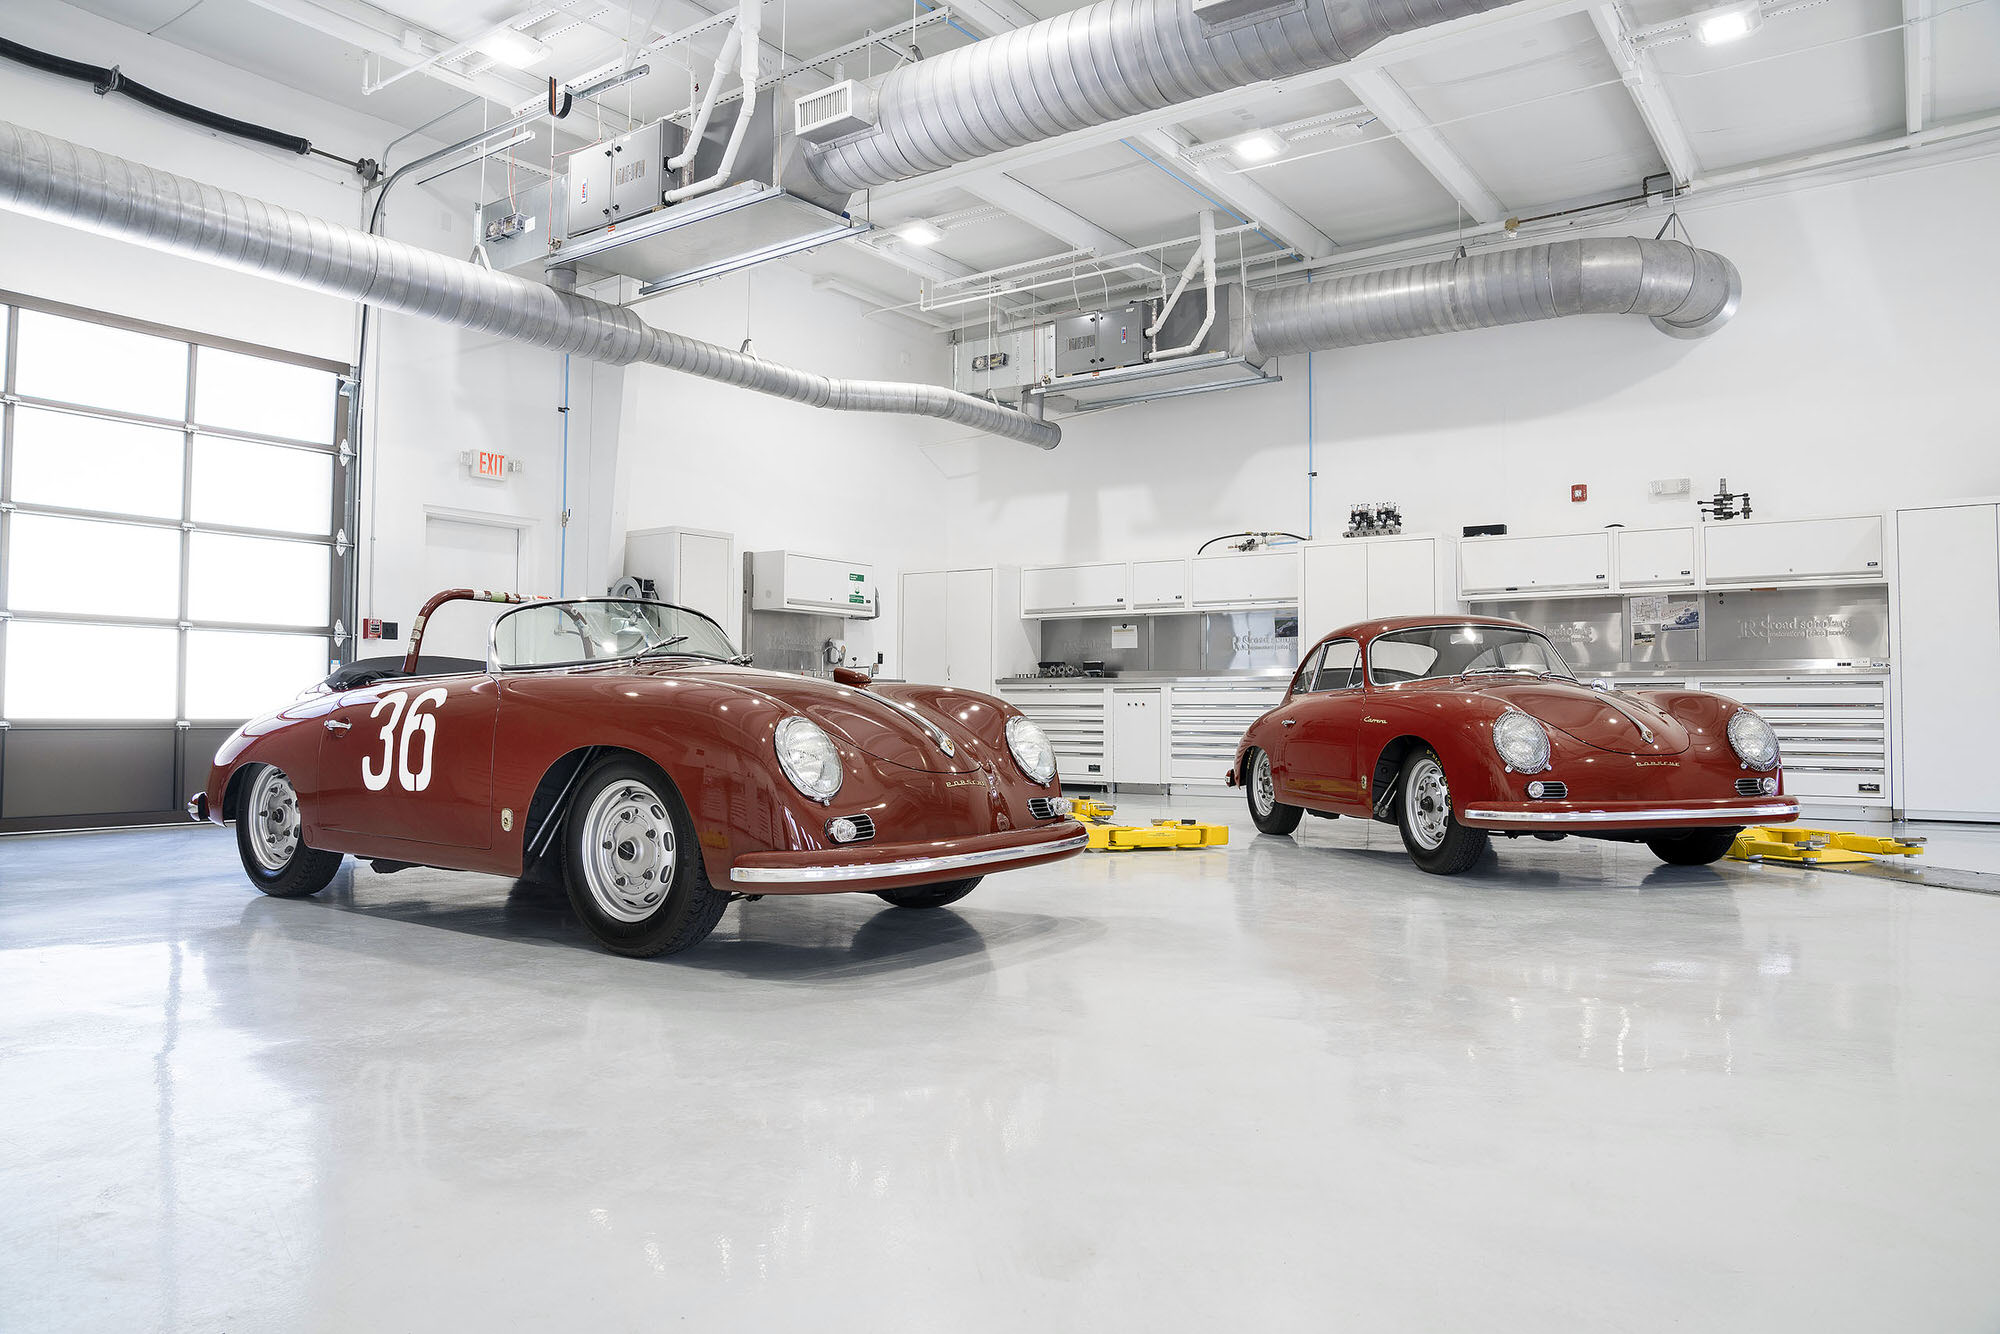 Legendary 1959 356 Porsche Carrera GT and Speedster.